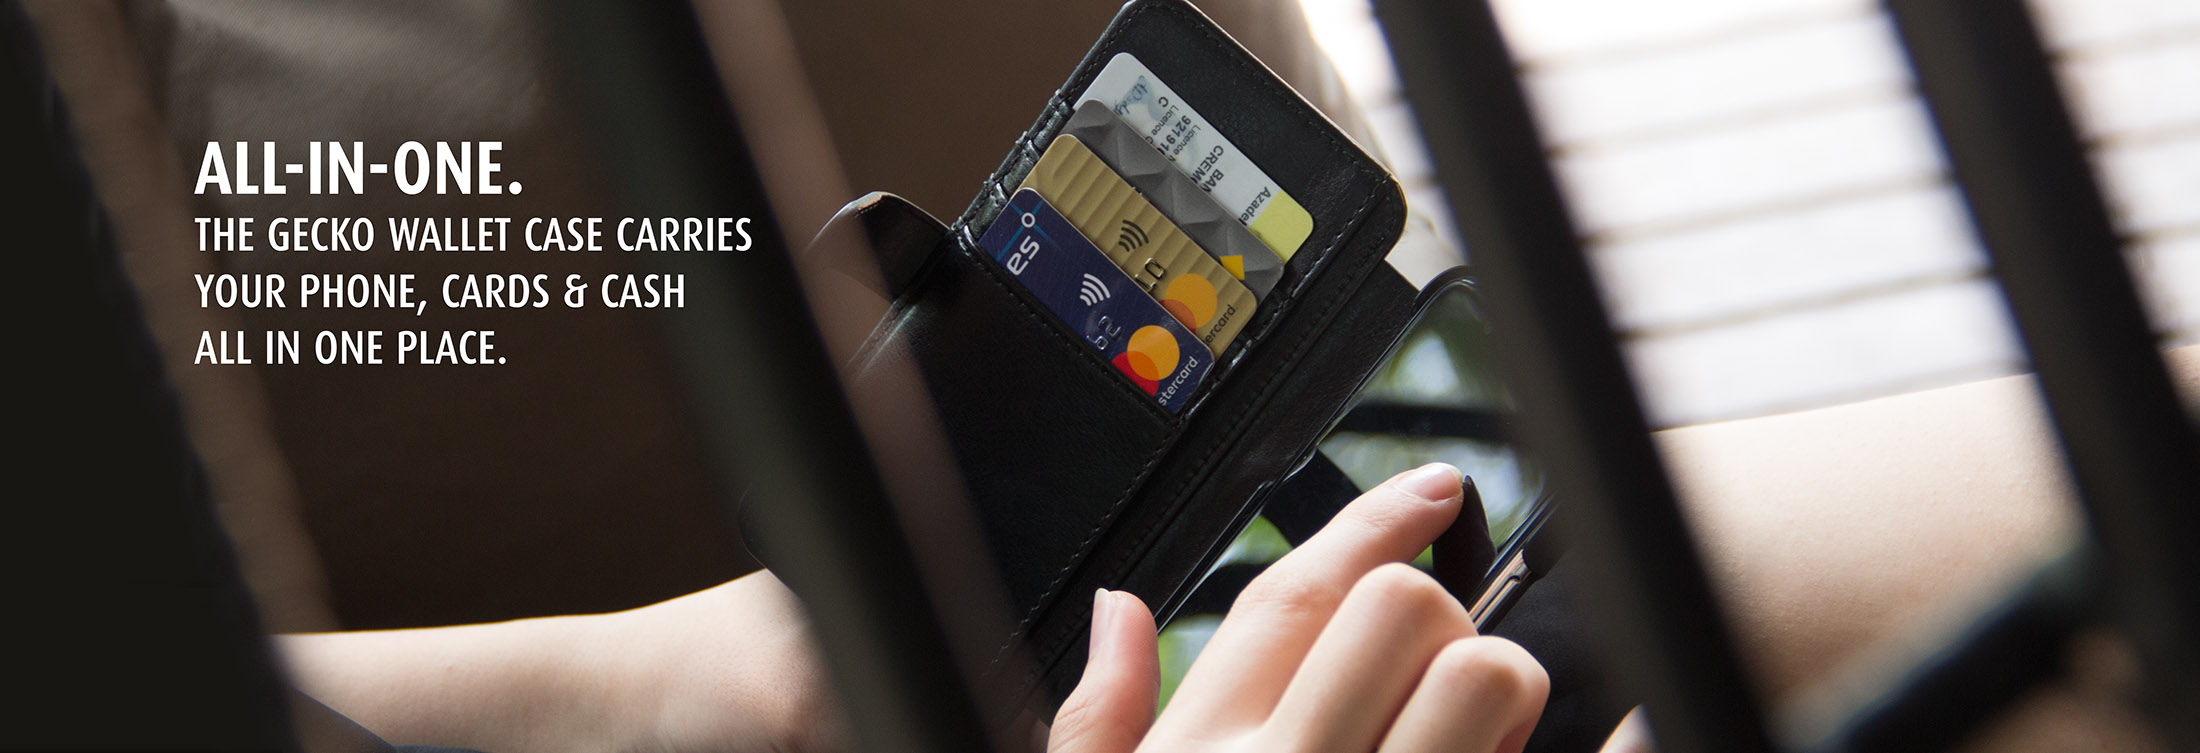 All-in-one. The Gecko Wallet Case carries your phone, cards and cash all in one place.